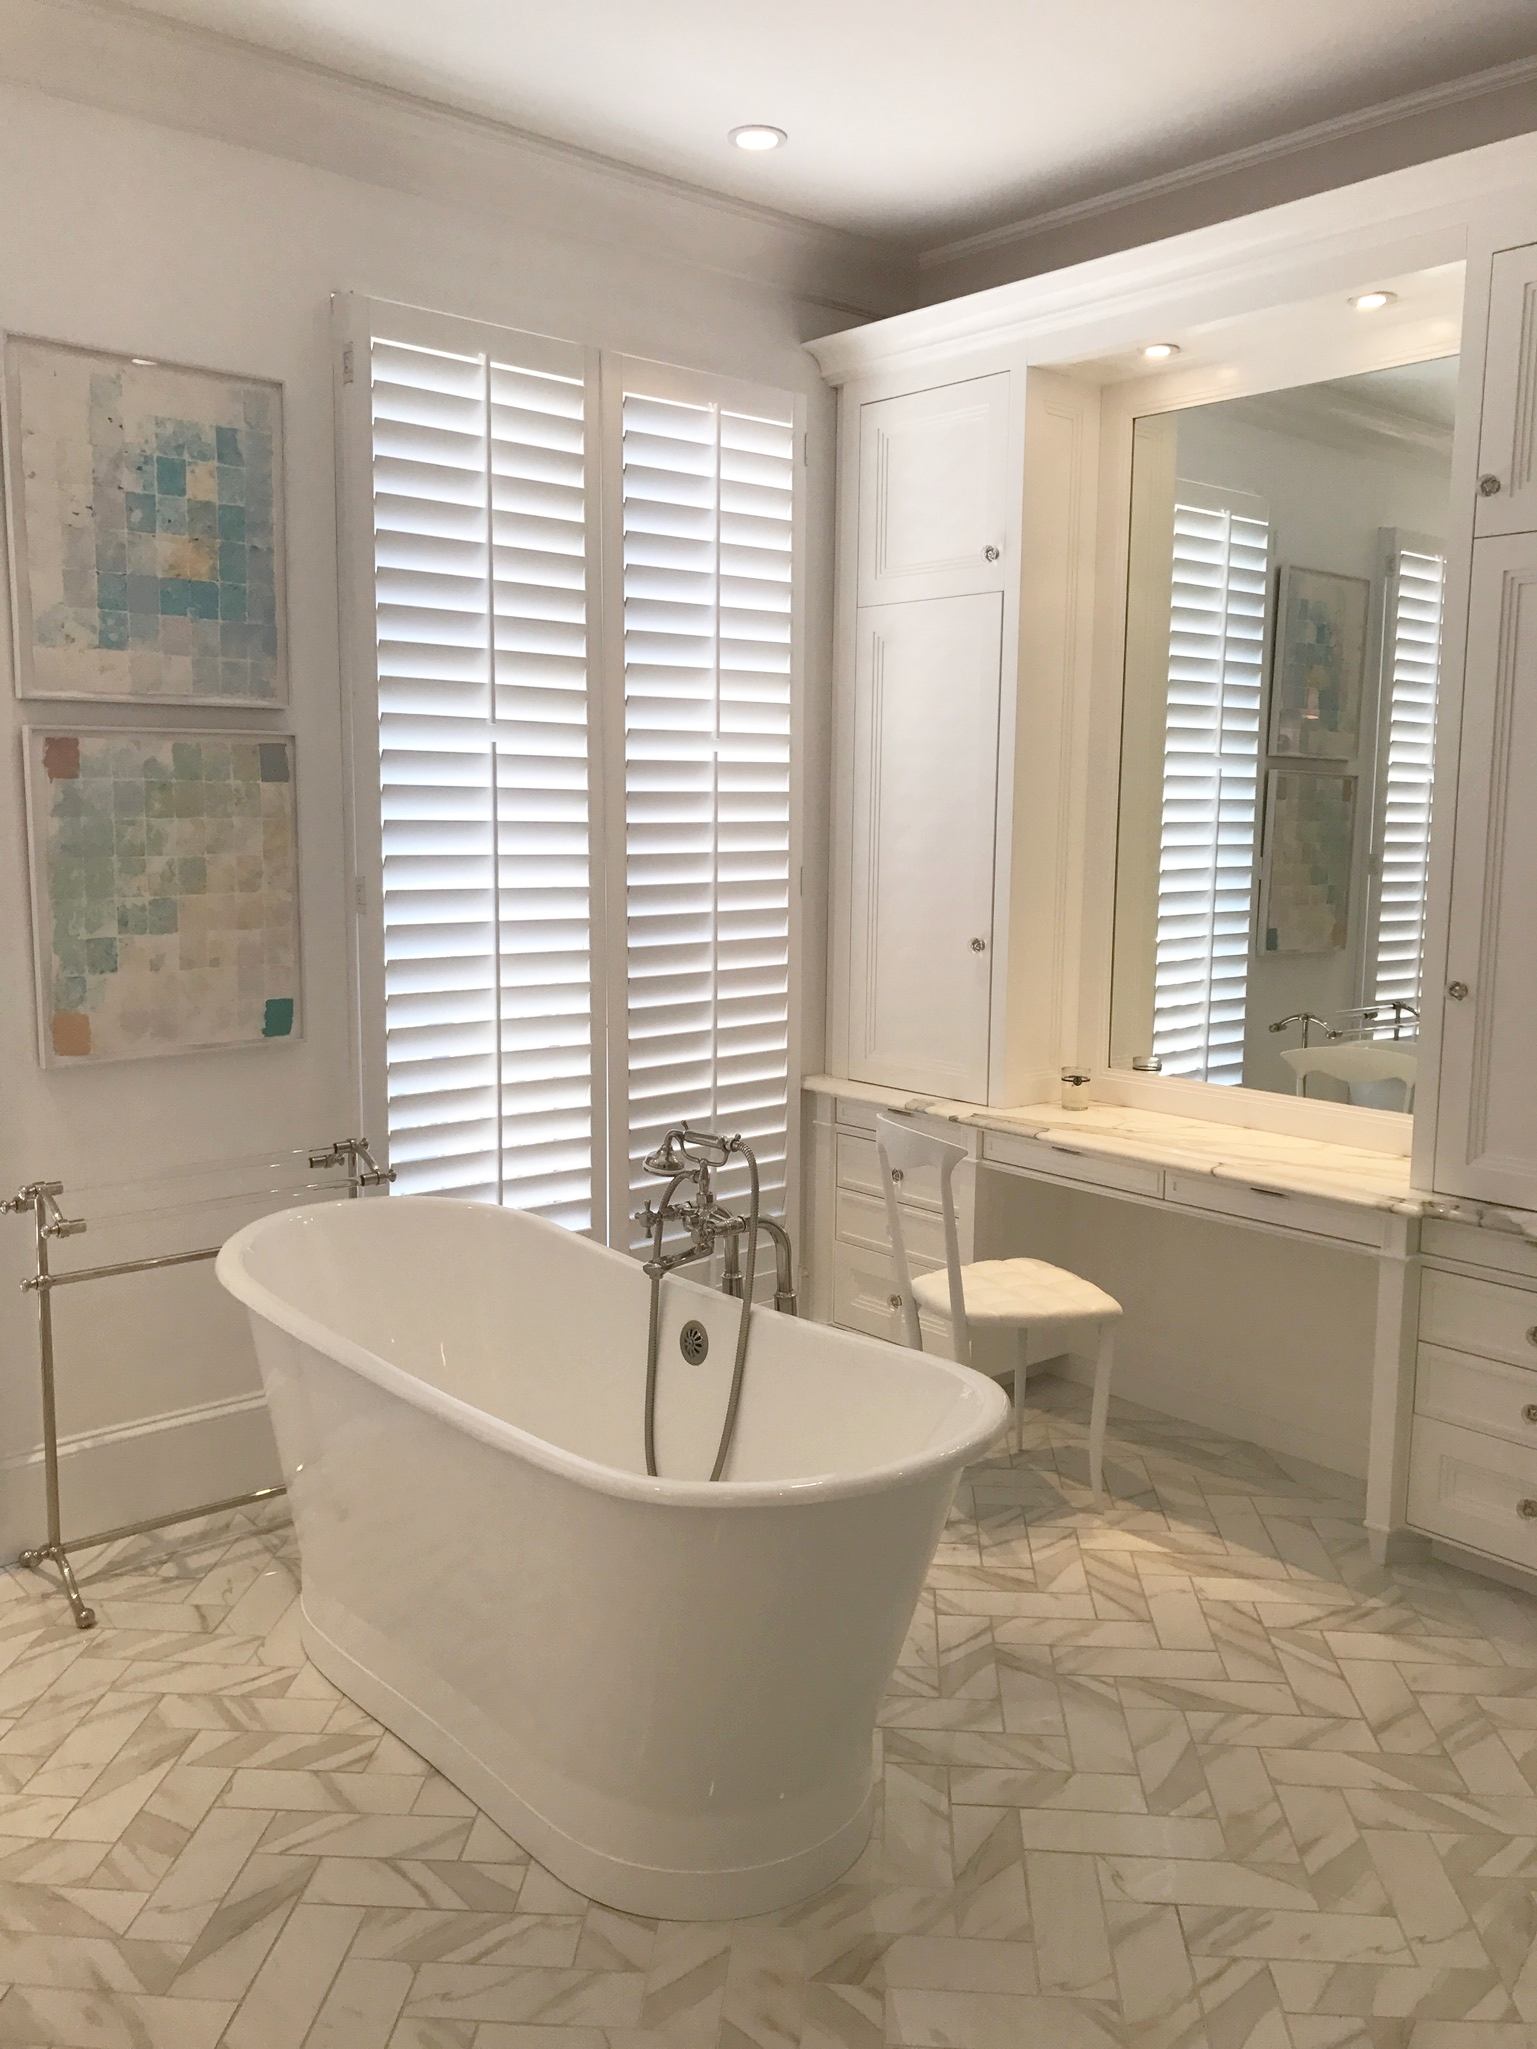 Bathroom design with vanity, stand alone tub, modern art, and tile floors.